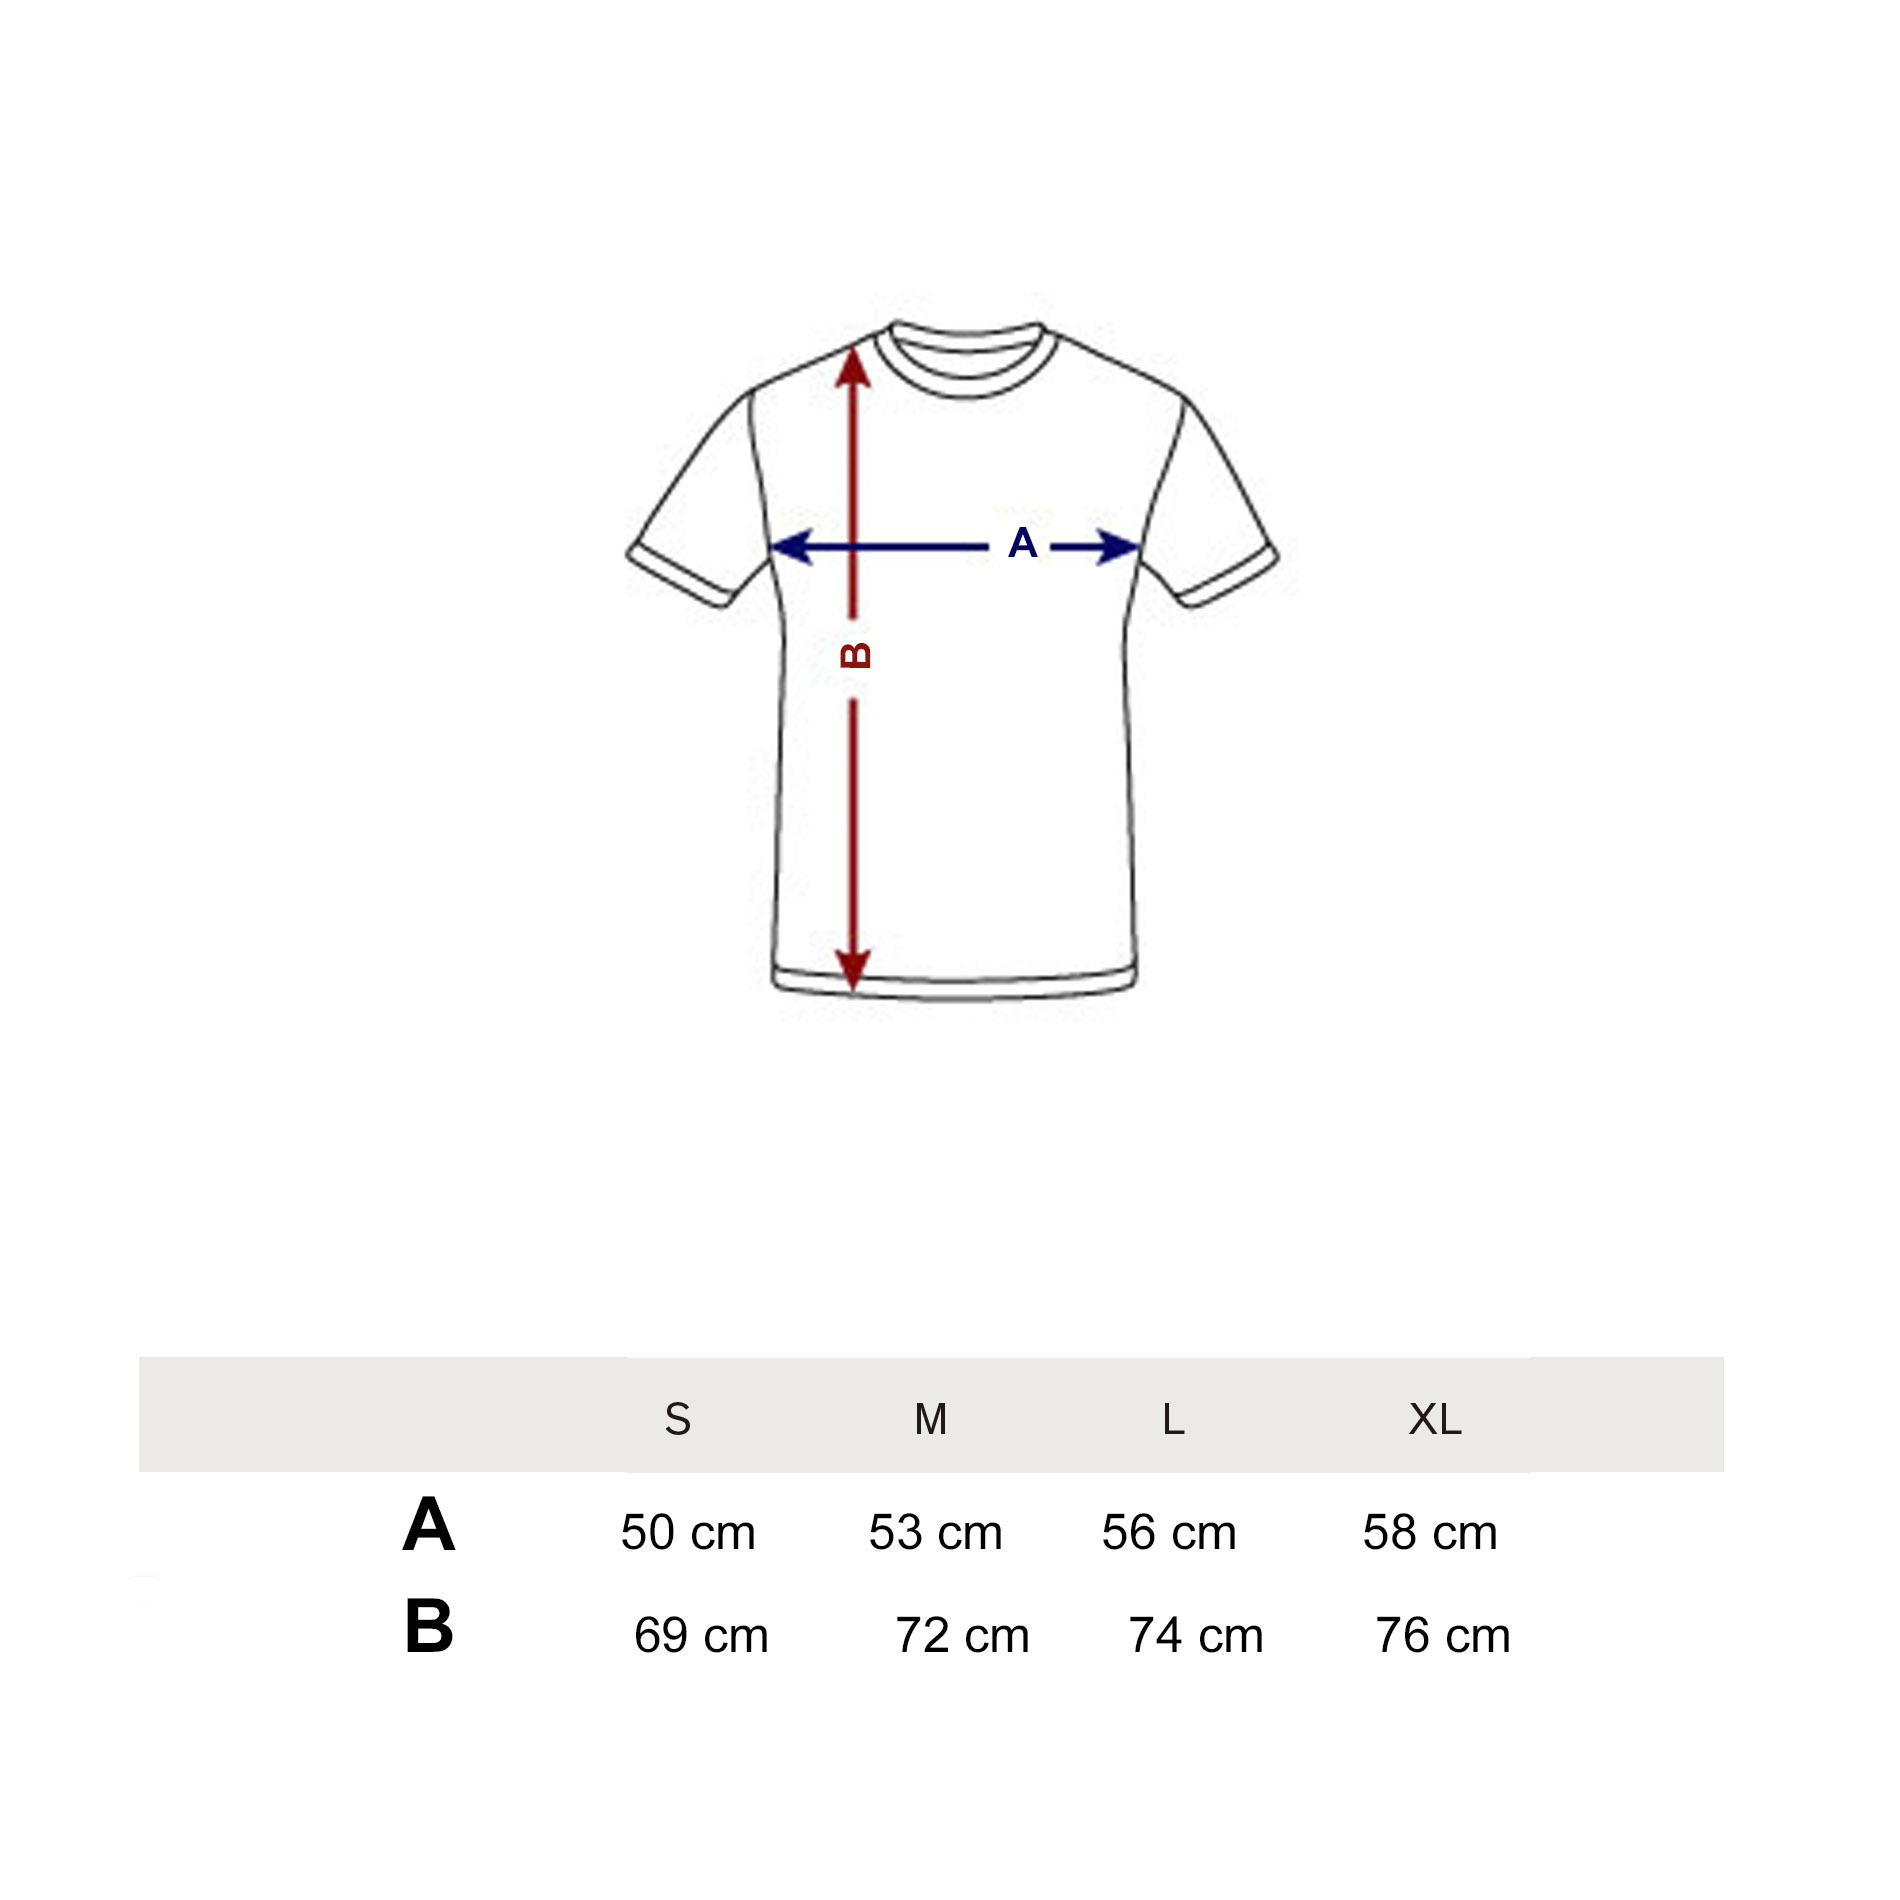 T-shirts Size Guide 2017